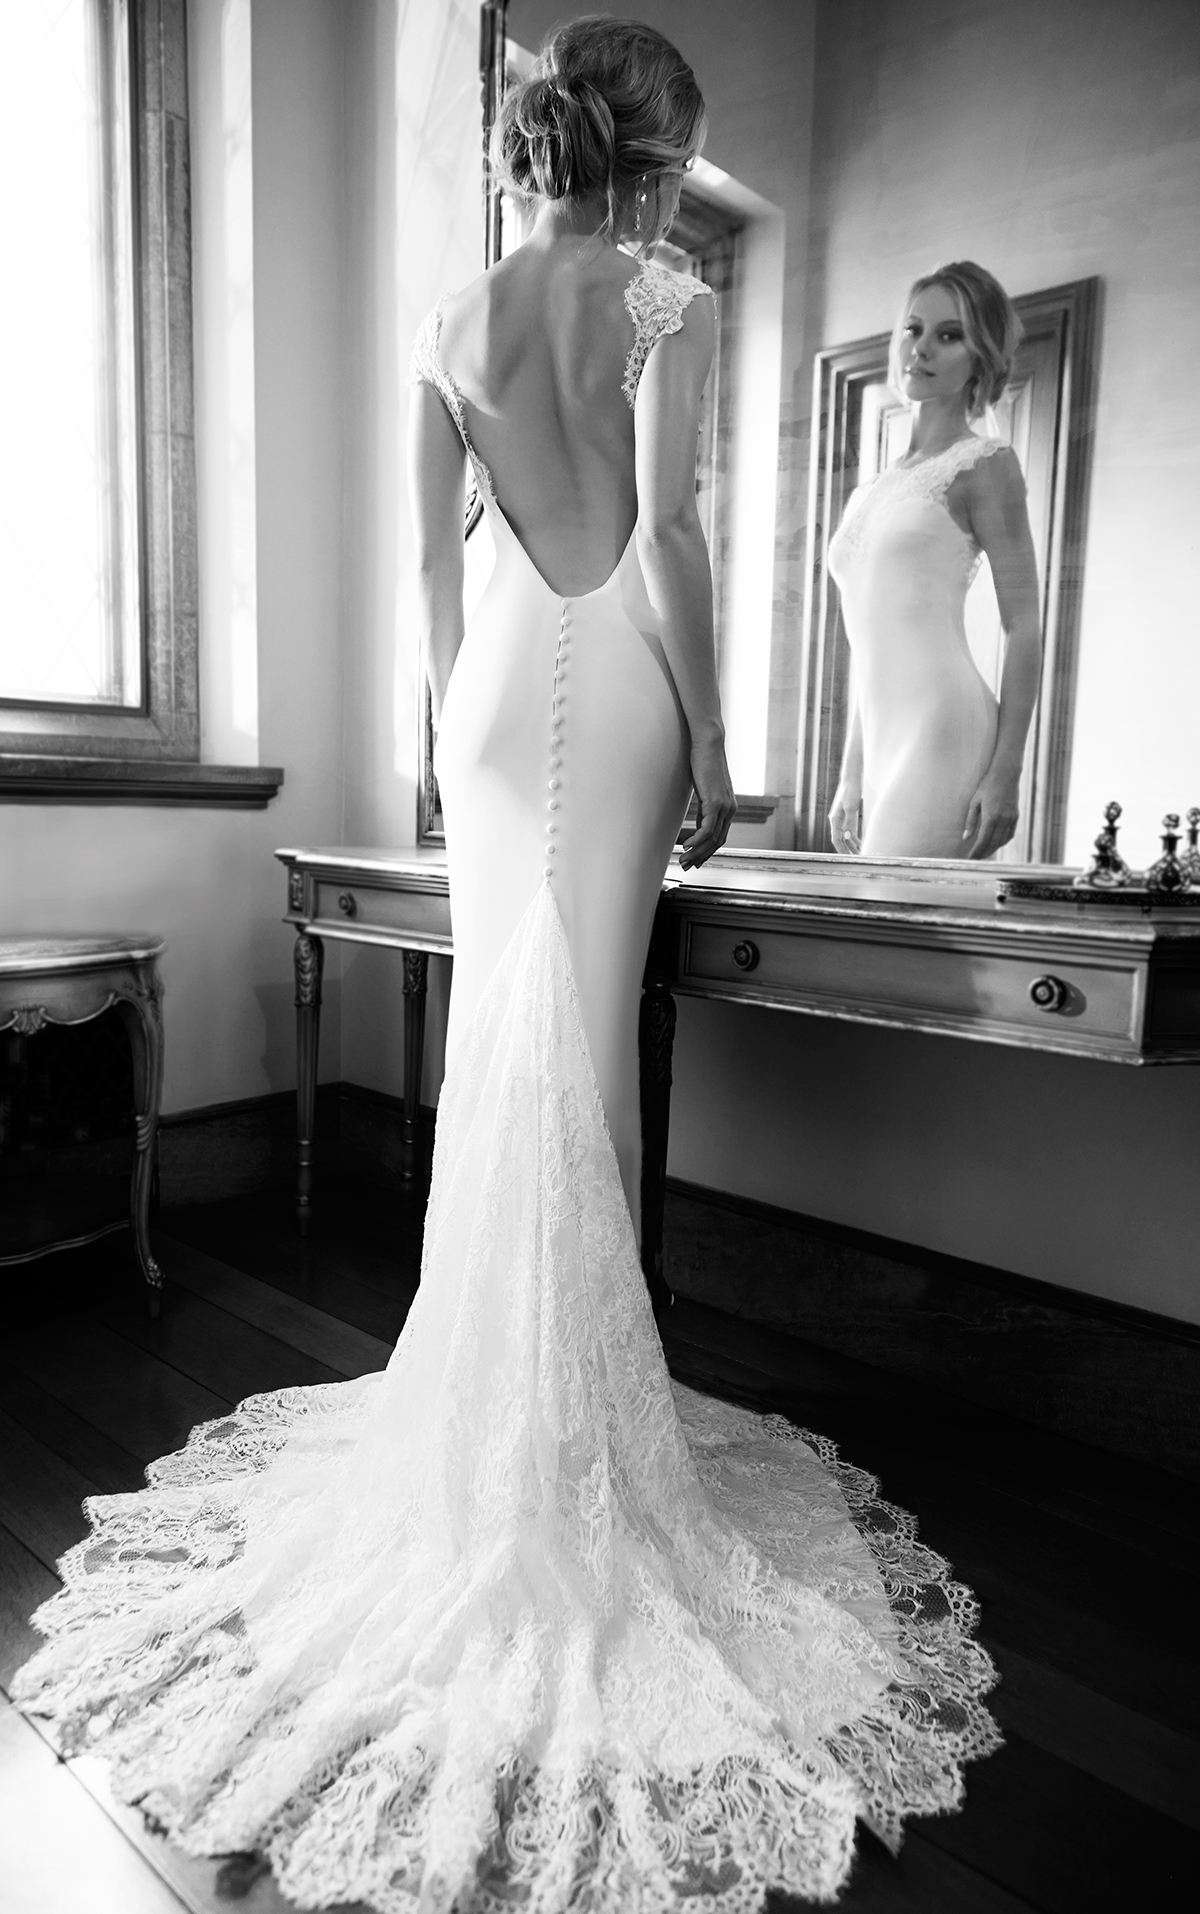 D368 Lace Long Sleeve Backless Mermaid Wedding Bridal Gowns,Unique ...